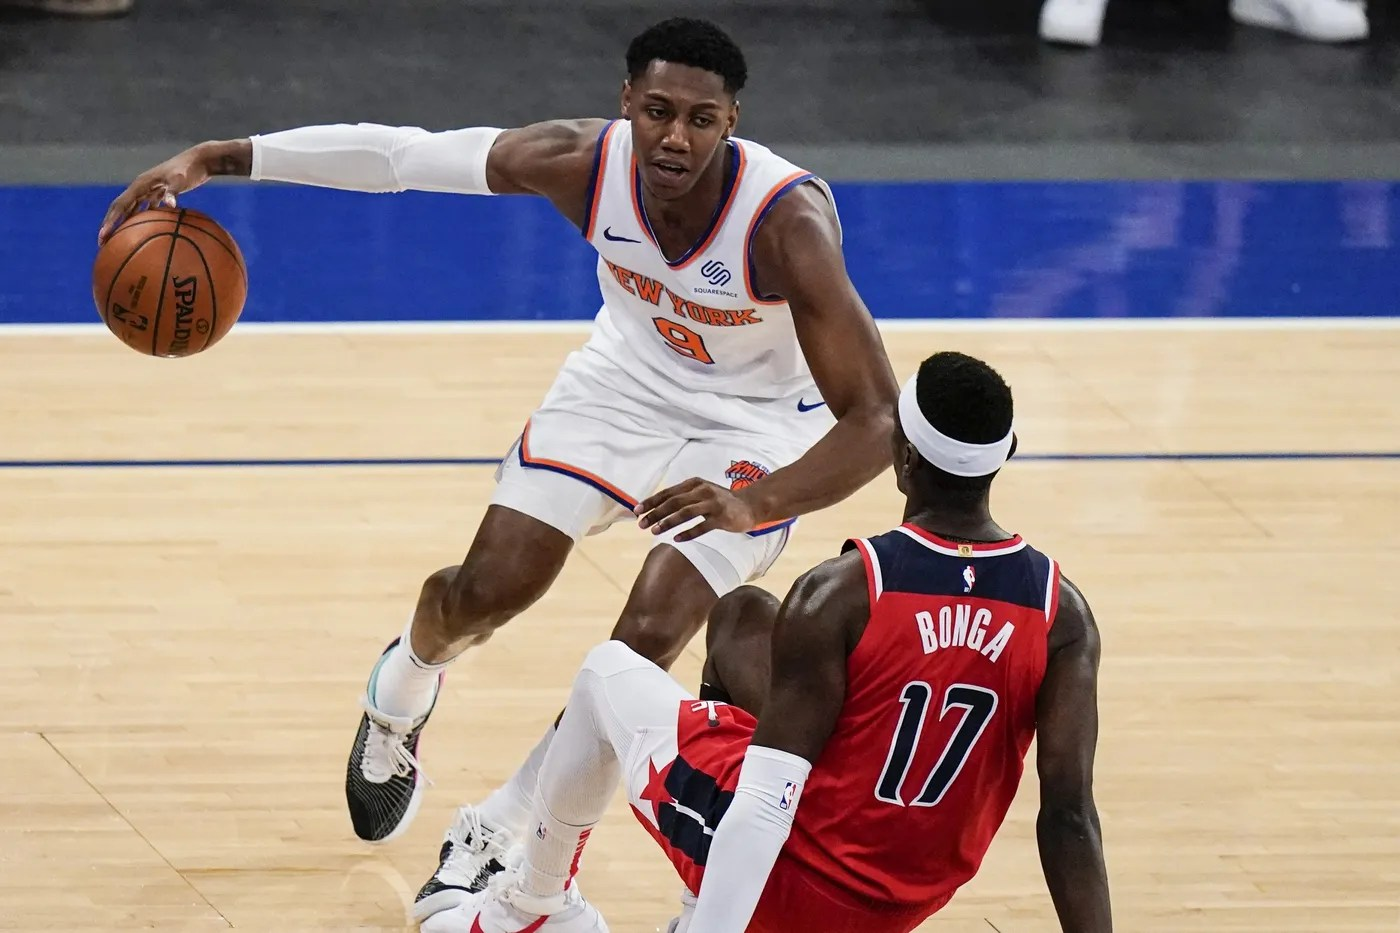 Mar 25, 2021; New York, New York, USA; Washington Wizards' Isaac Bonga (17) defends New York Knicks' RJ Barrett (9) during the second half of an NBA basketball game at Madison Square Garden. Mandatory Credit: Frank Franklin II/POOL PHOTOS-USA TODAY Sports